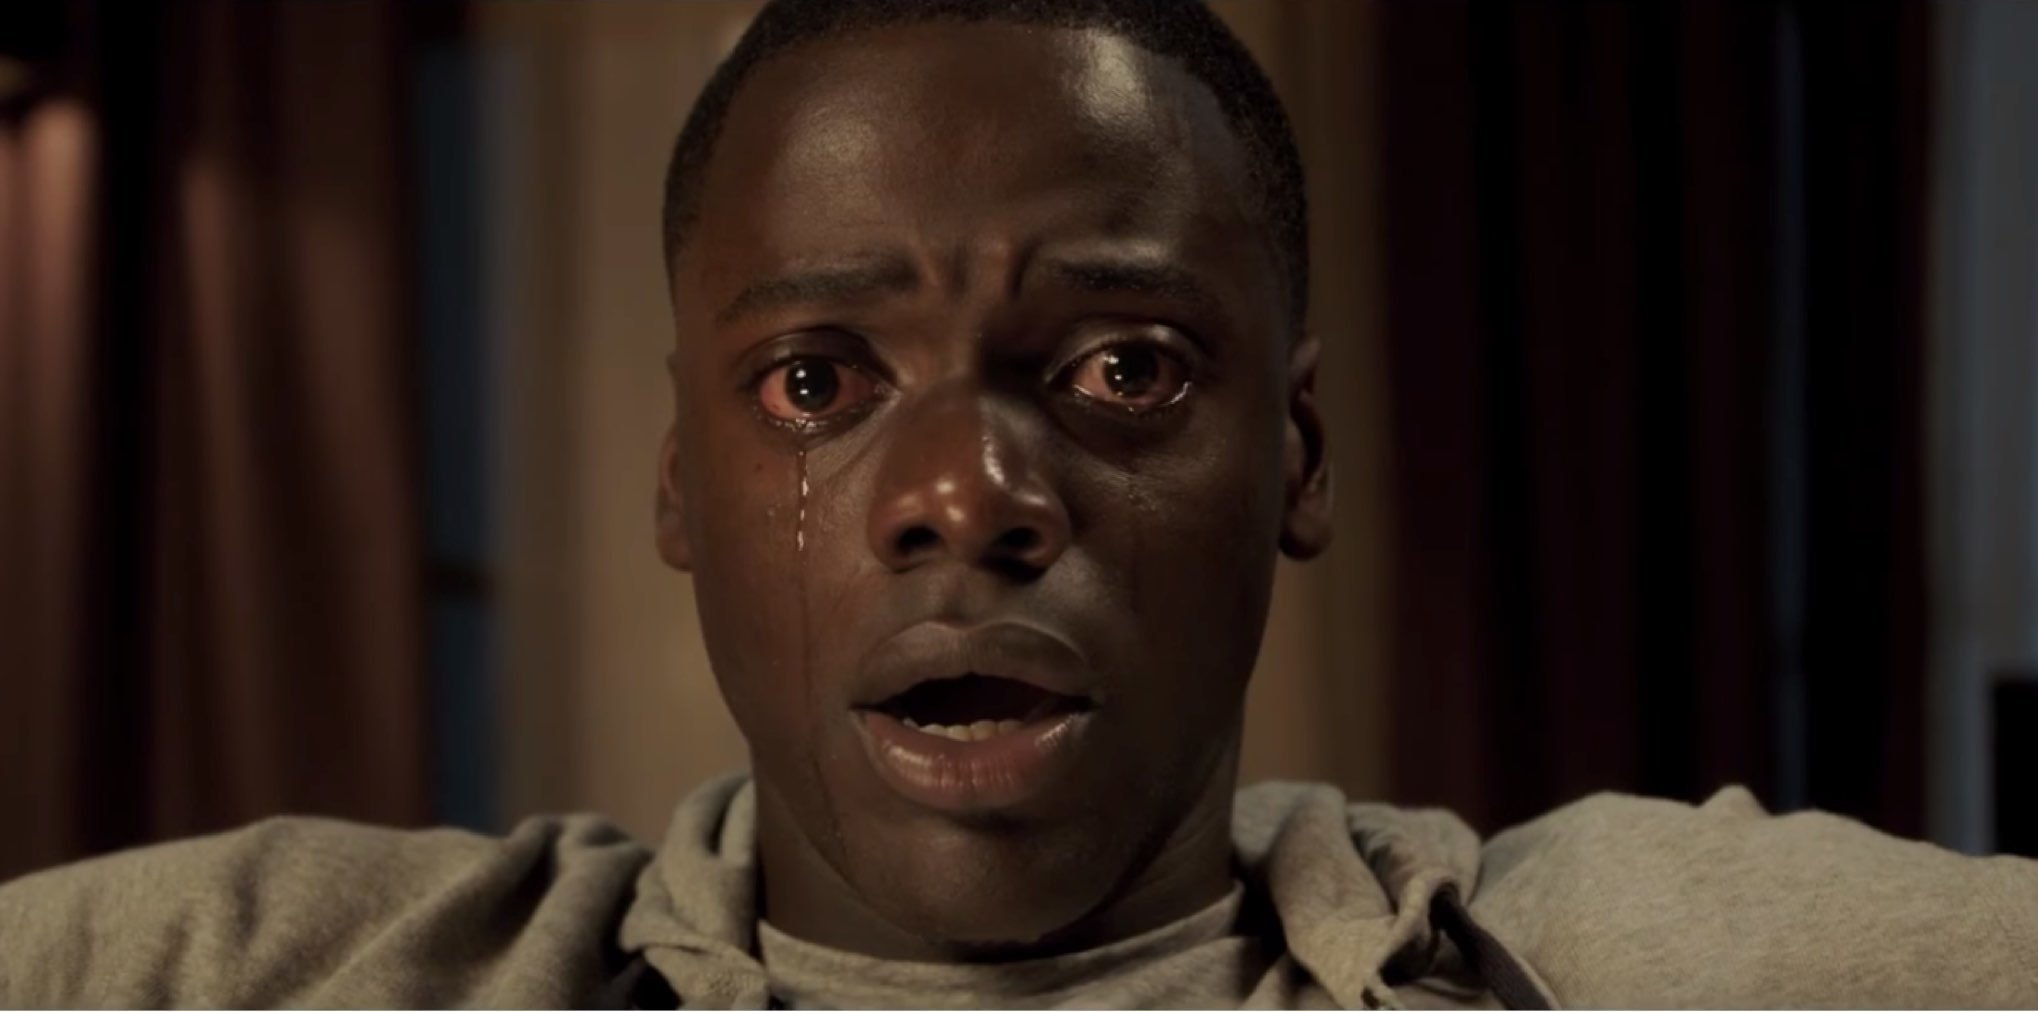 Get Out: The Ending We Needed